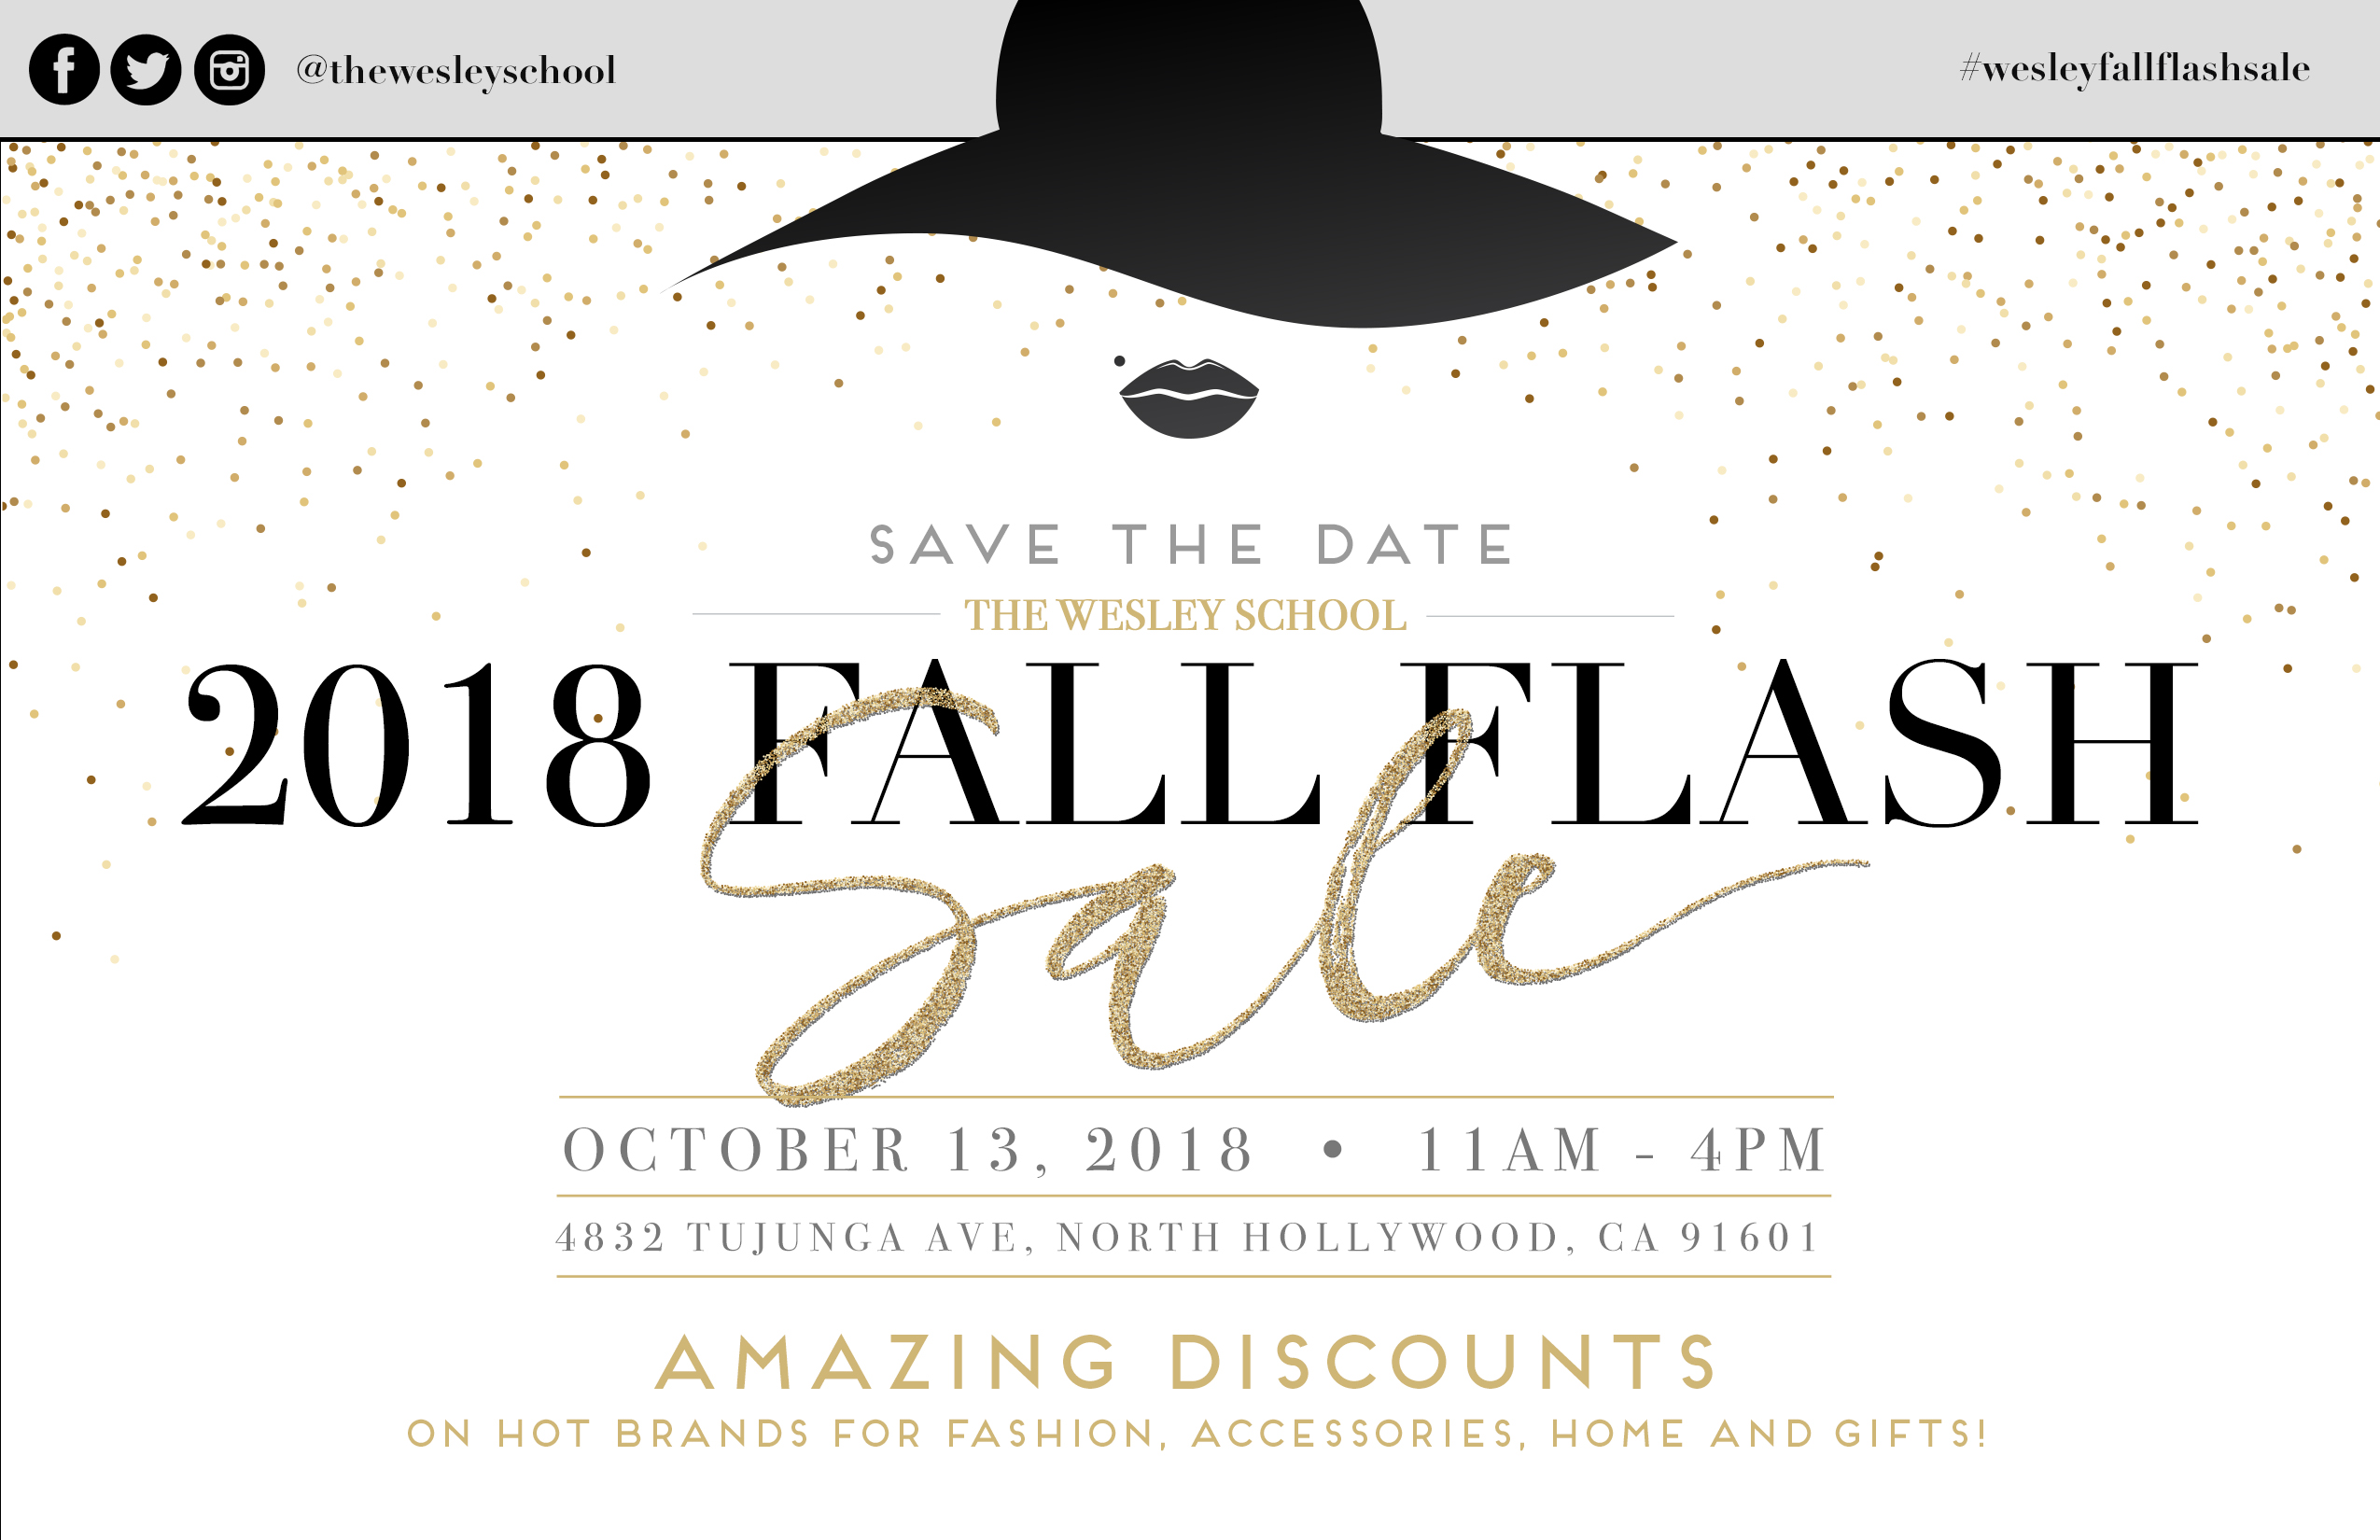 2018 Fall Flash Sale The Wesley School North Hollywood CA